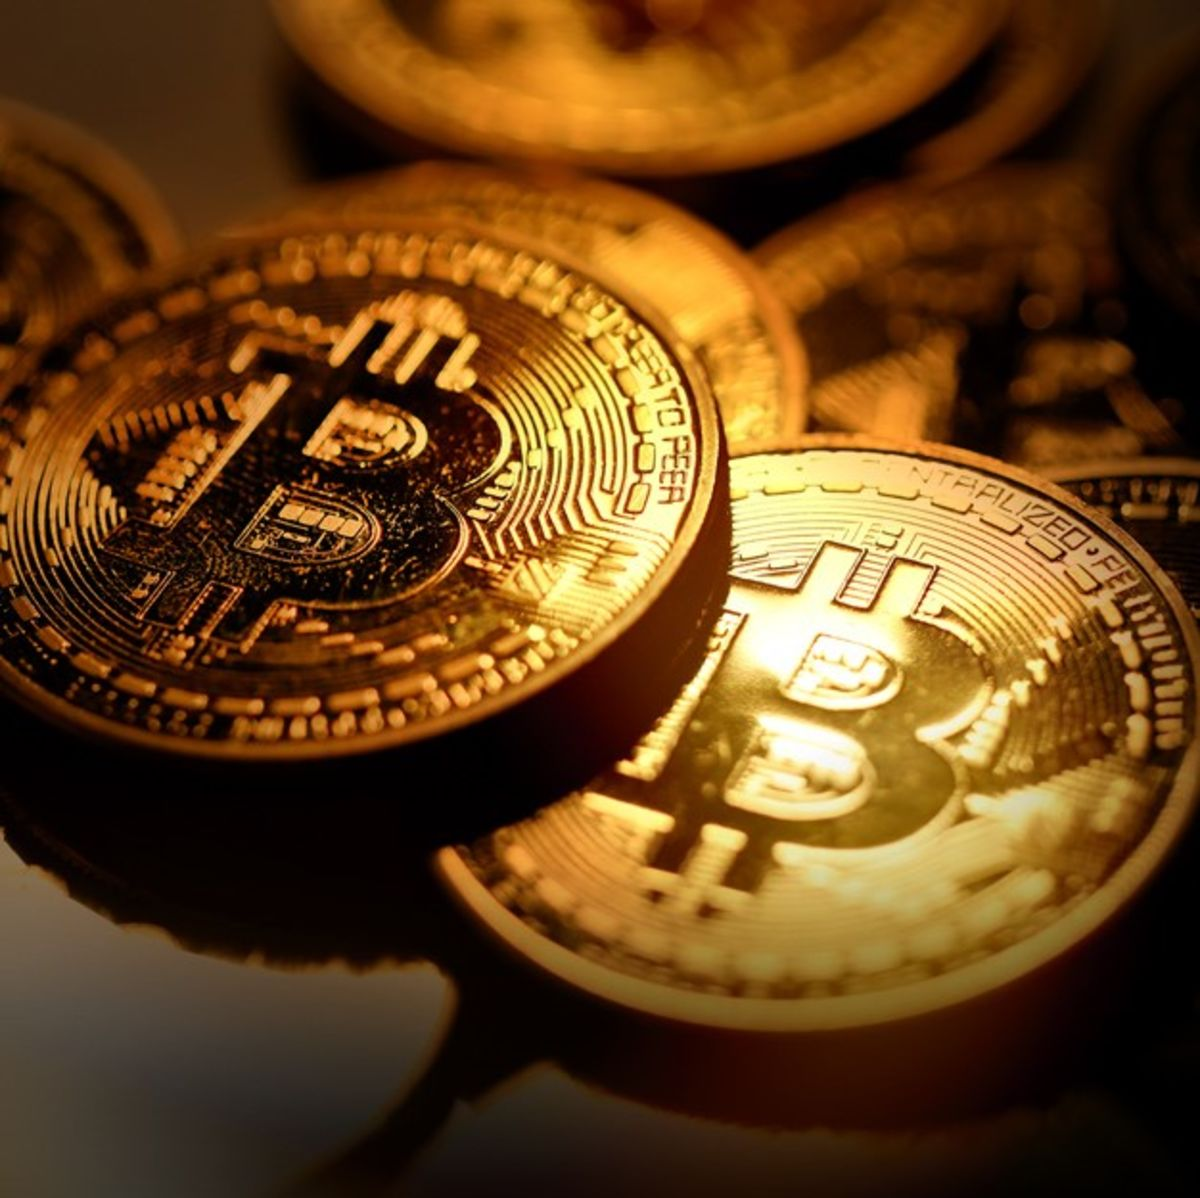 Bloomberg New Economy: Central Banks May Soon Be Coming for Bitcoin